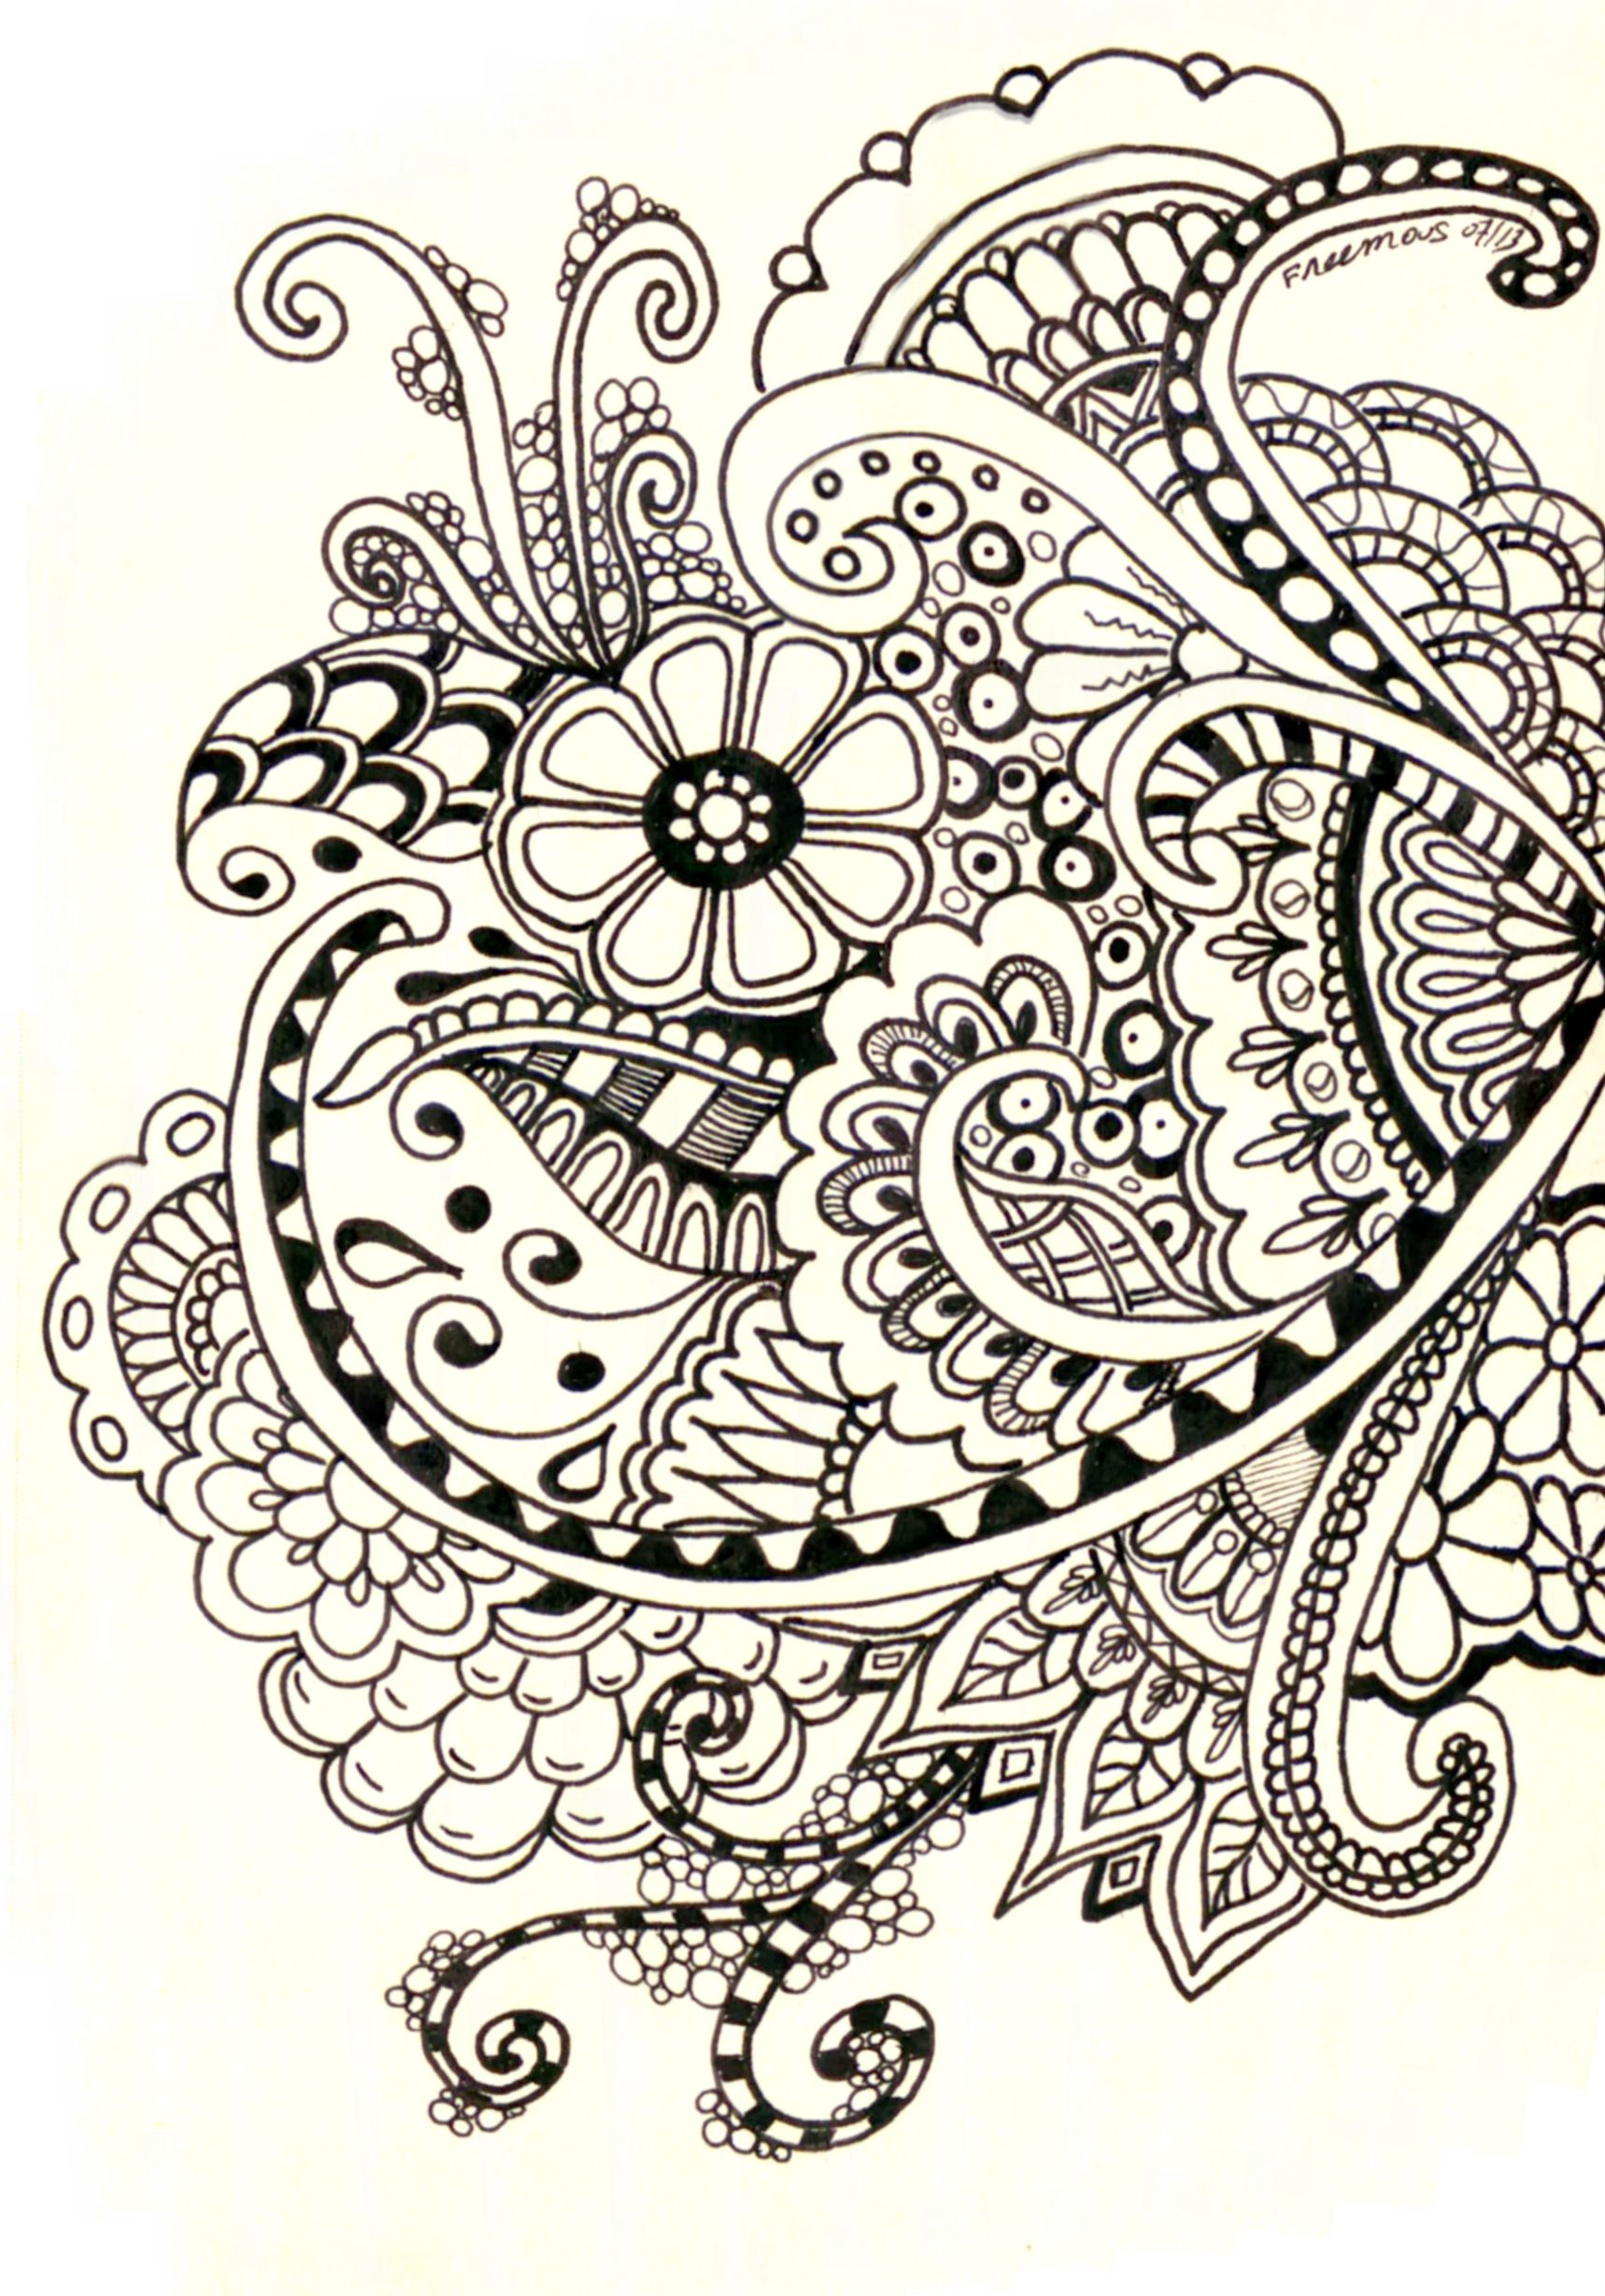 Pin By Beth Snyder On Zentangle Patterns Henna Designs Drawing Henna Designs On Paper Henna Drawings